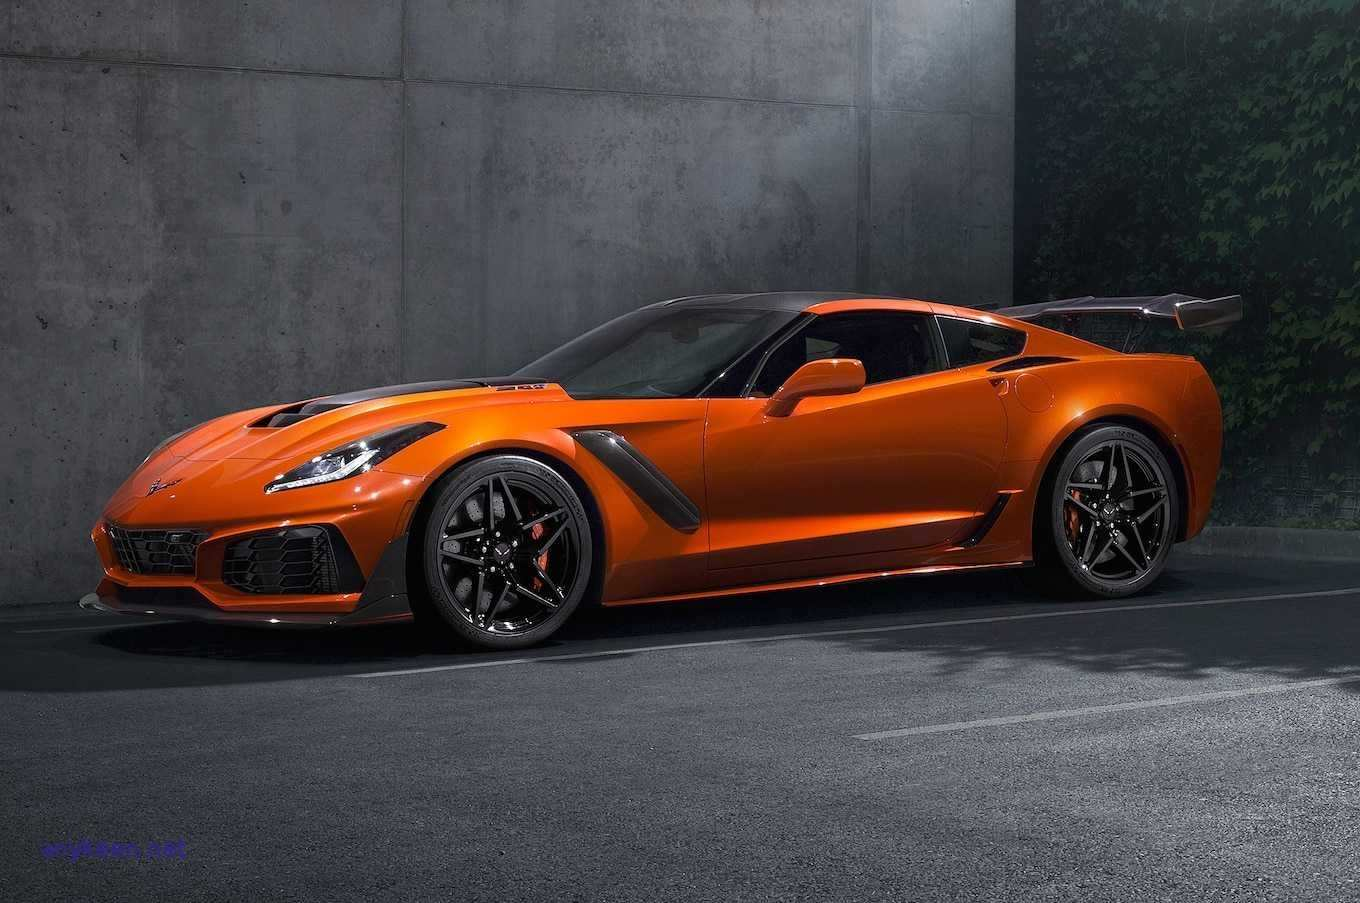 21 Gallery of Chevrolet Zora 2019 Review And Release Date Exterior and Interior by Chevrolet Zora 2019 Review And Release Date